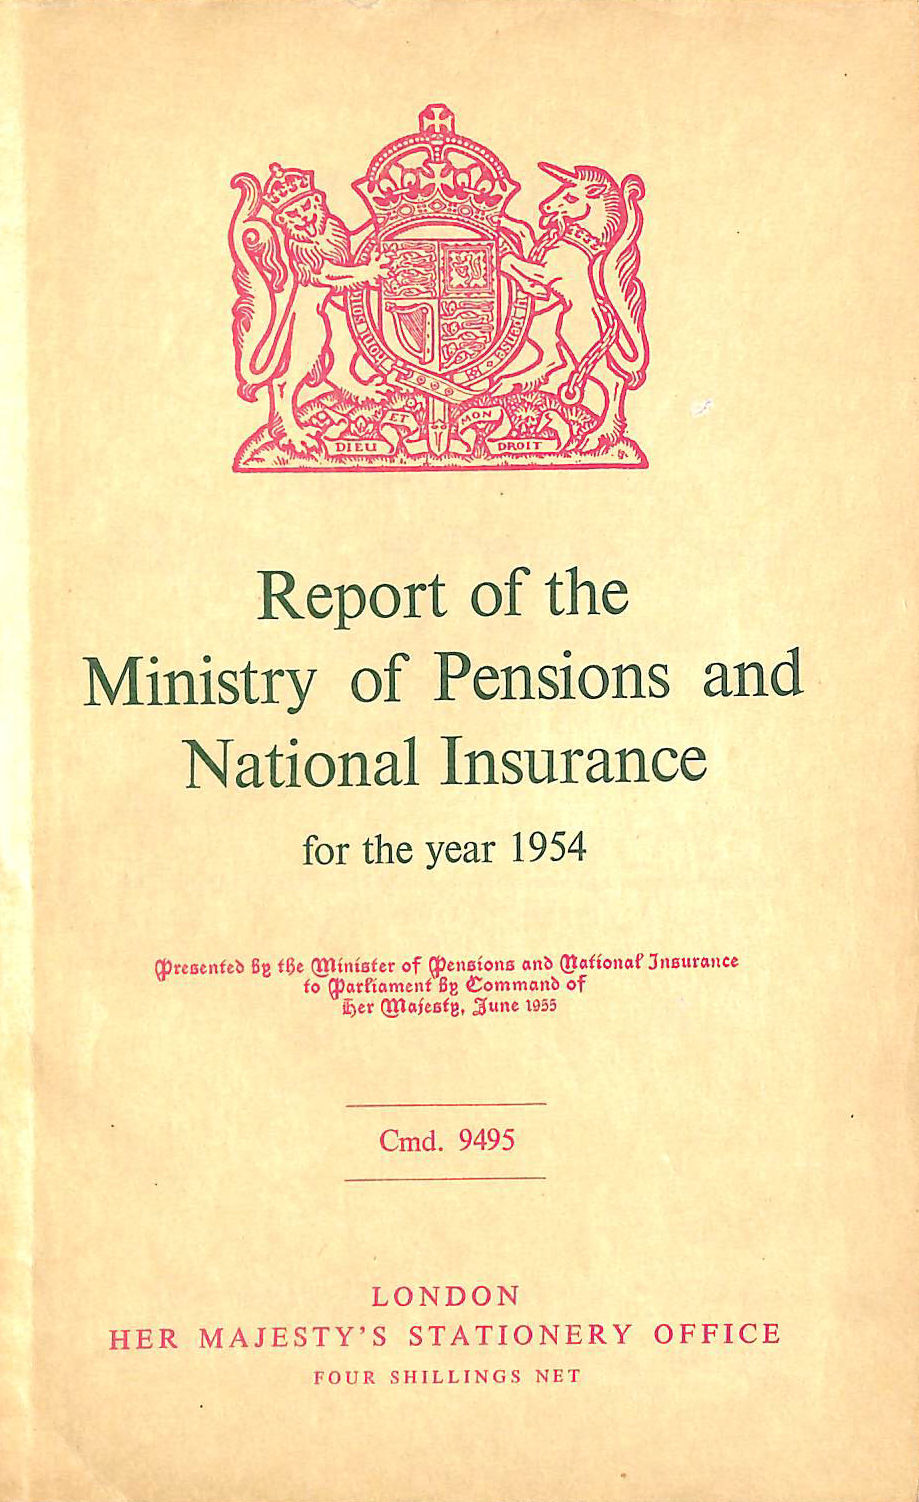 Image for Report of the Ministry of Pensions and National Insurance 1954